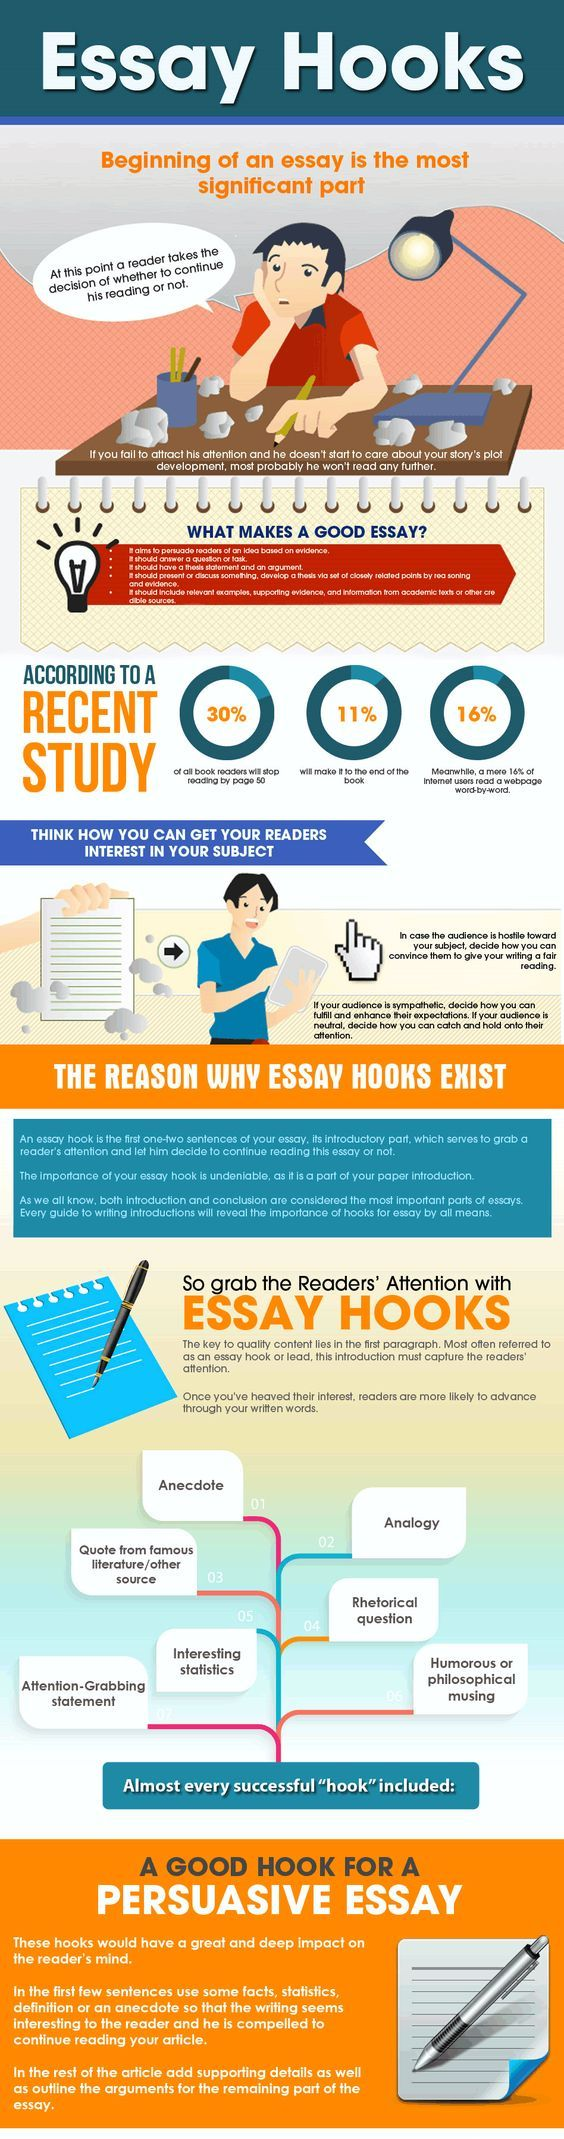 Freud Essay Essay Hooks Infographic Essay Proofreading also The Allegory Of The Cave Essay How To Start Your Academic Paper With An Incredible Hook  Fastessay Organic Food Essay